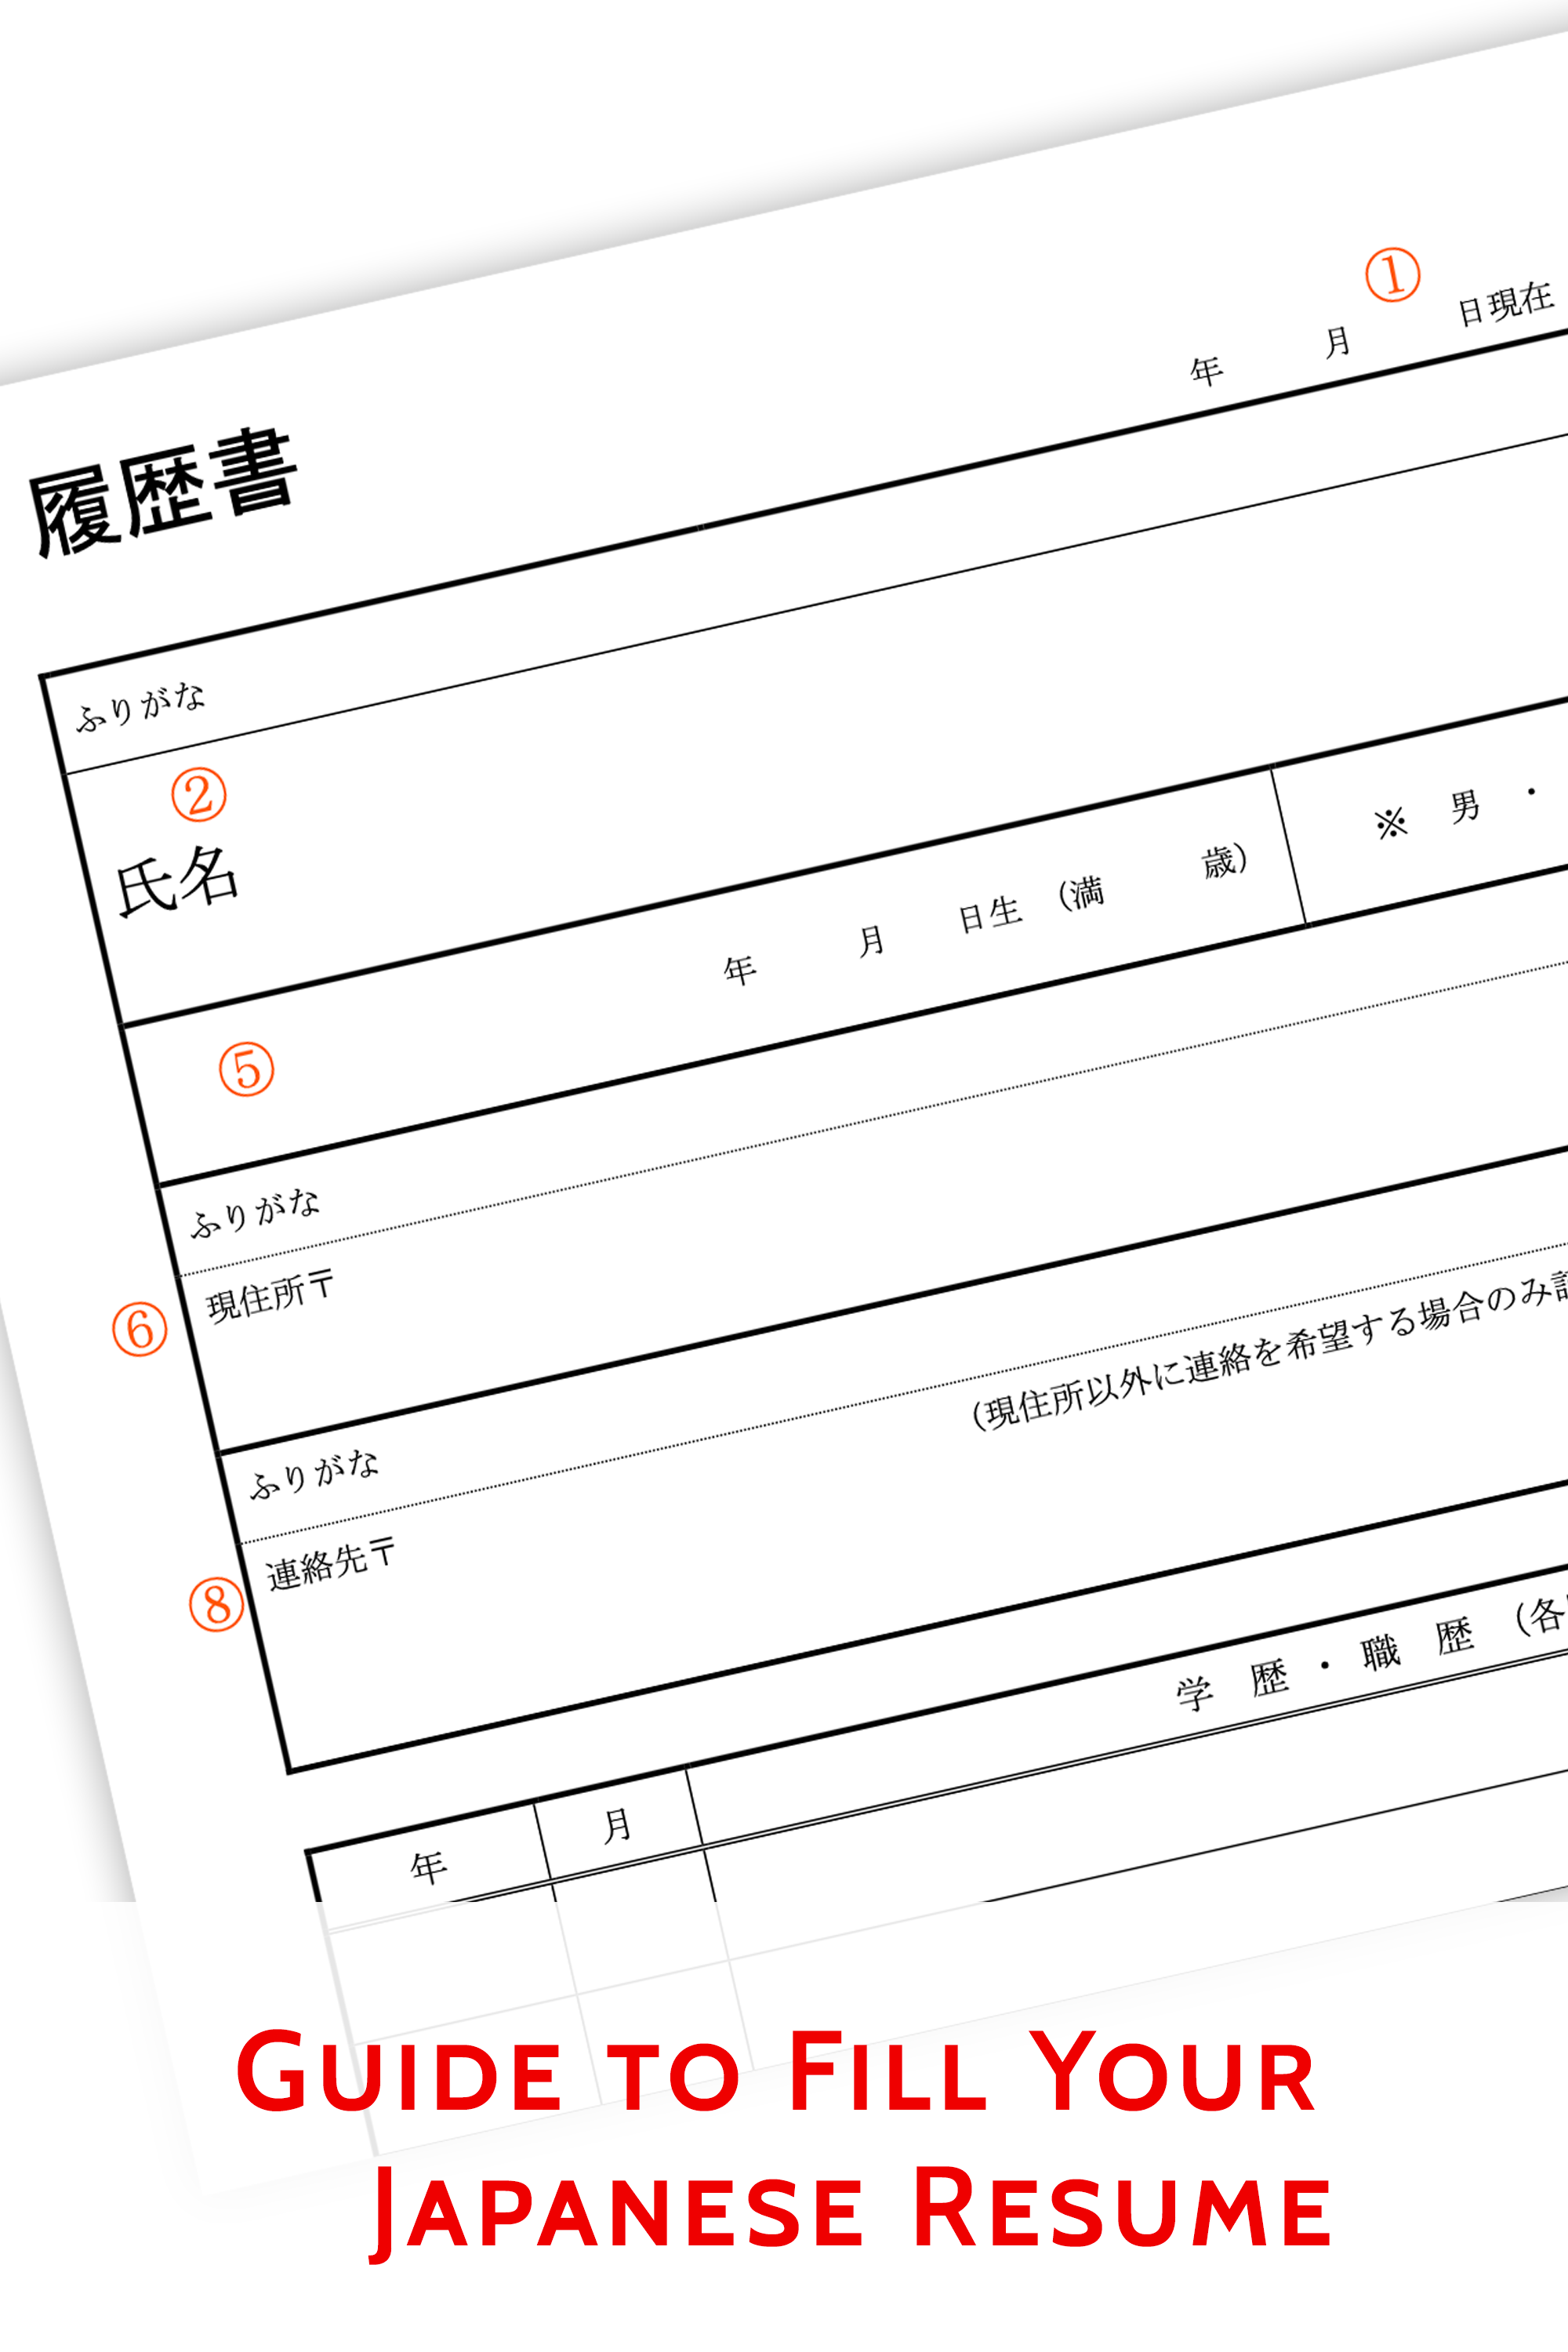 Guide To Fill Your Japanese Cv With Downloadable Template Resume Work In Japan Downloadable Resume Template